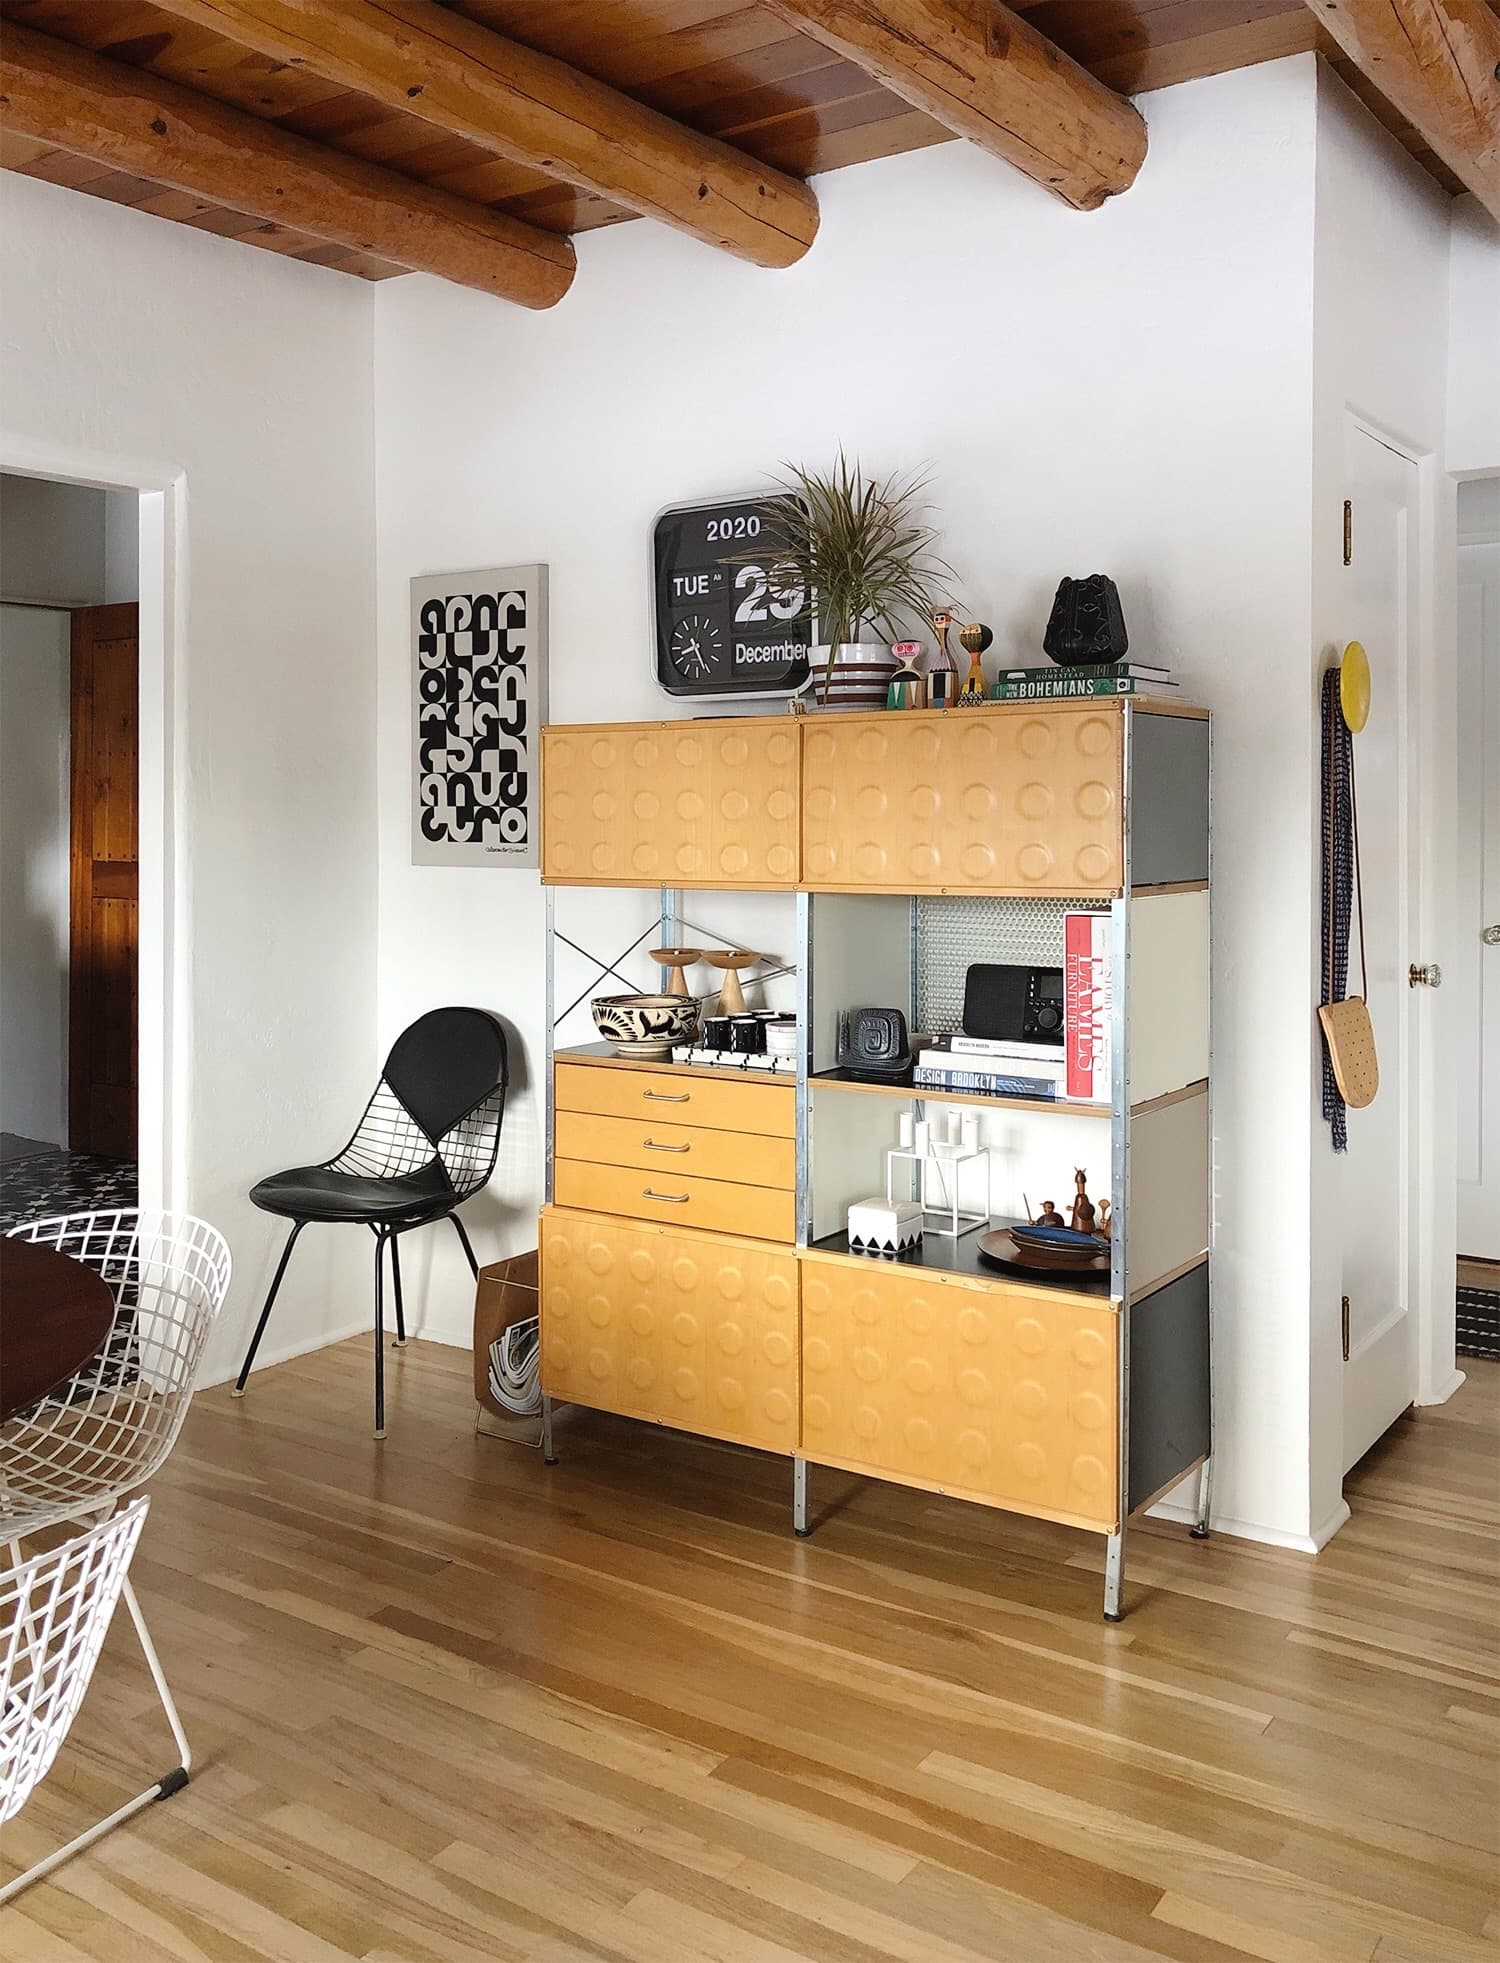 Eames Storage Unit in dining room